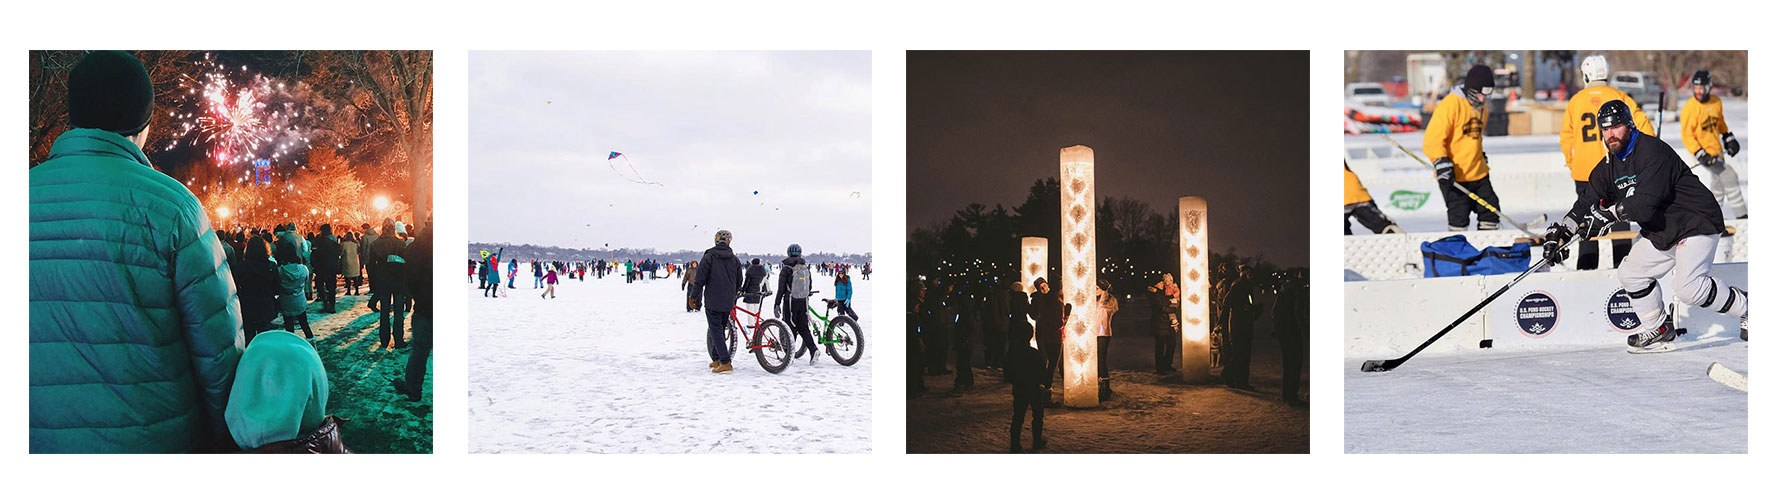 collage of minneapolis events in the winter